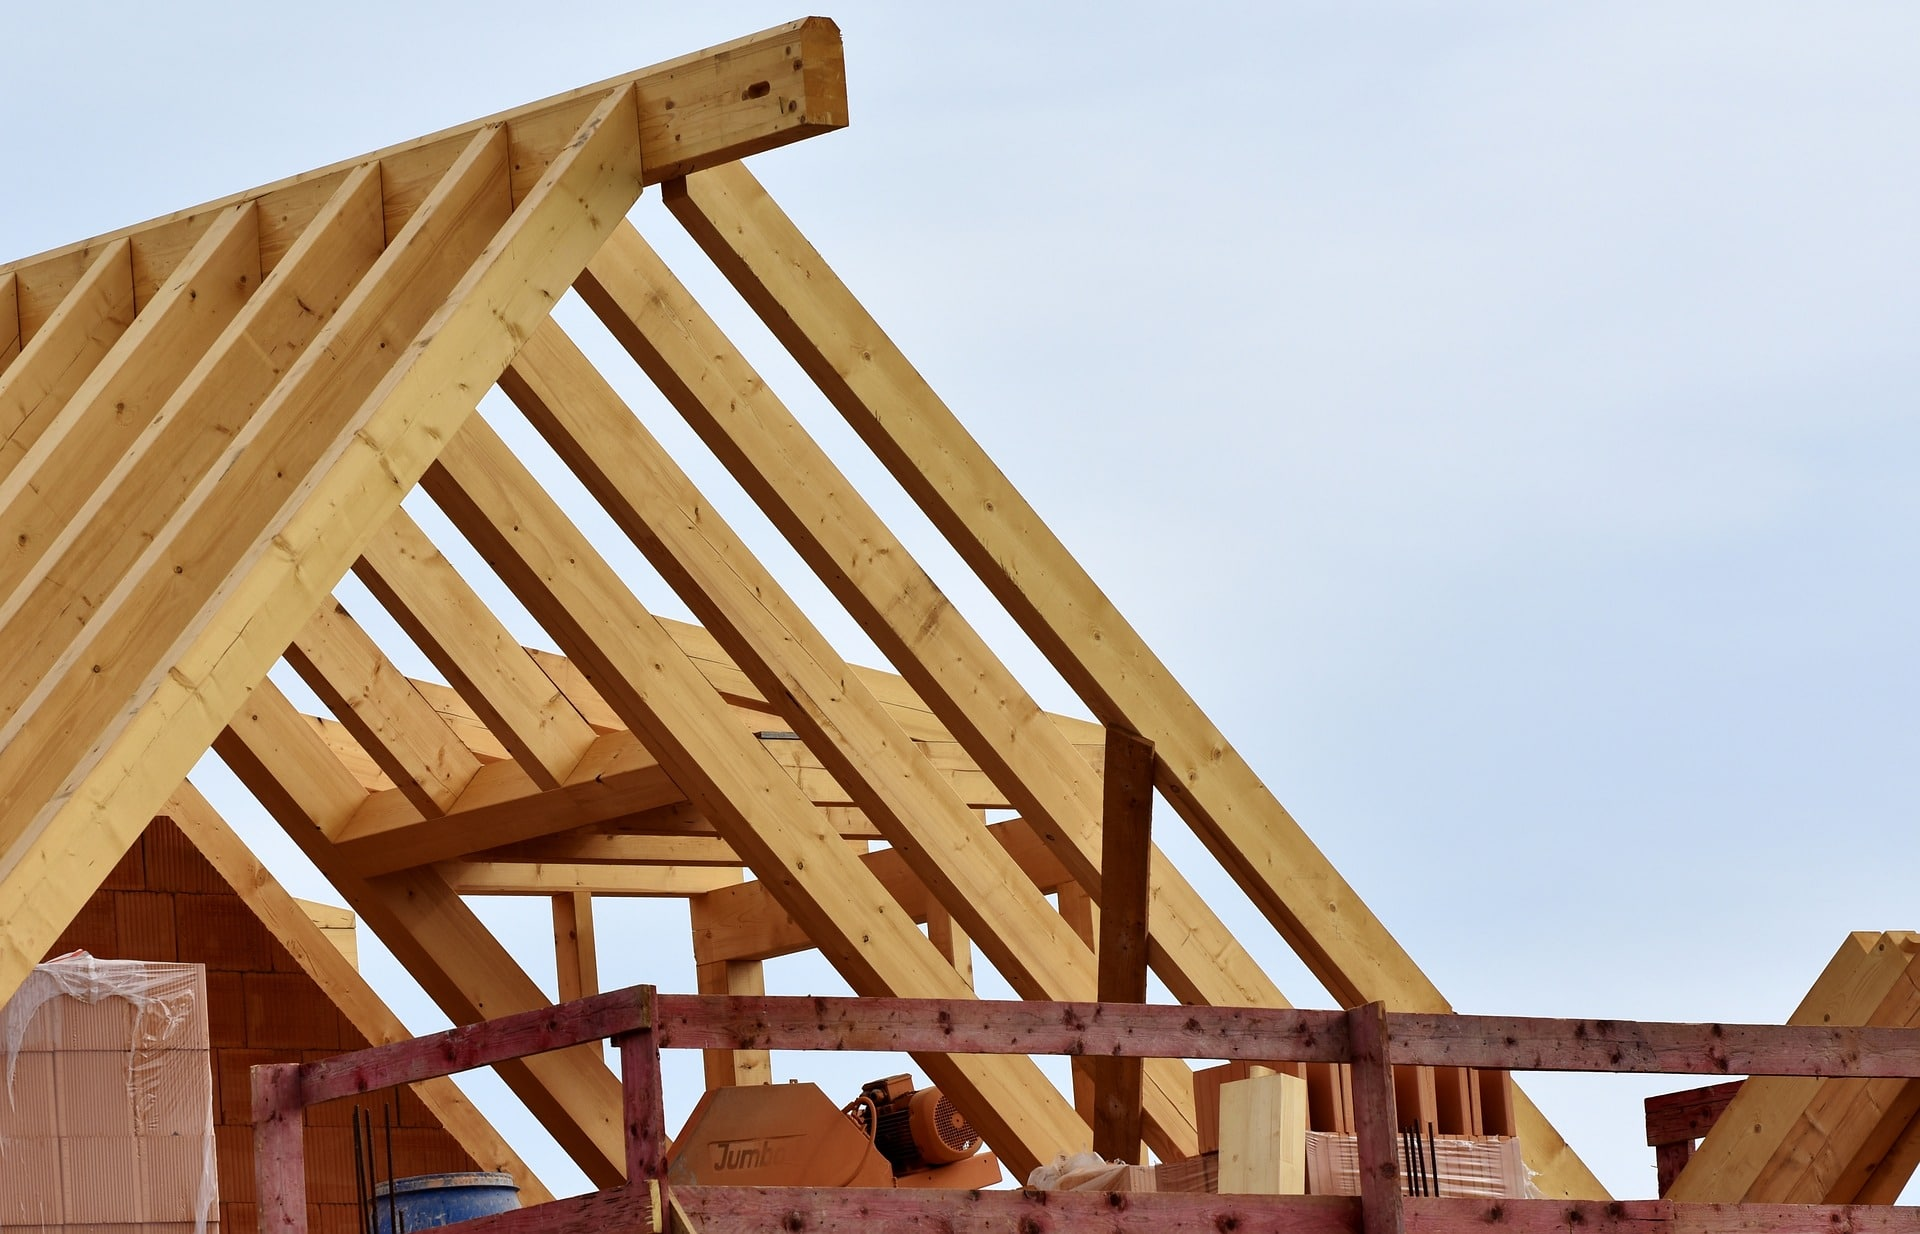 How To Build Shed Trusses Correctly Sheds For Home